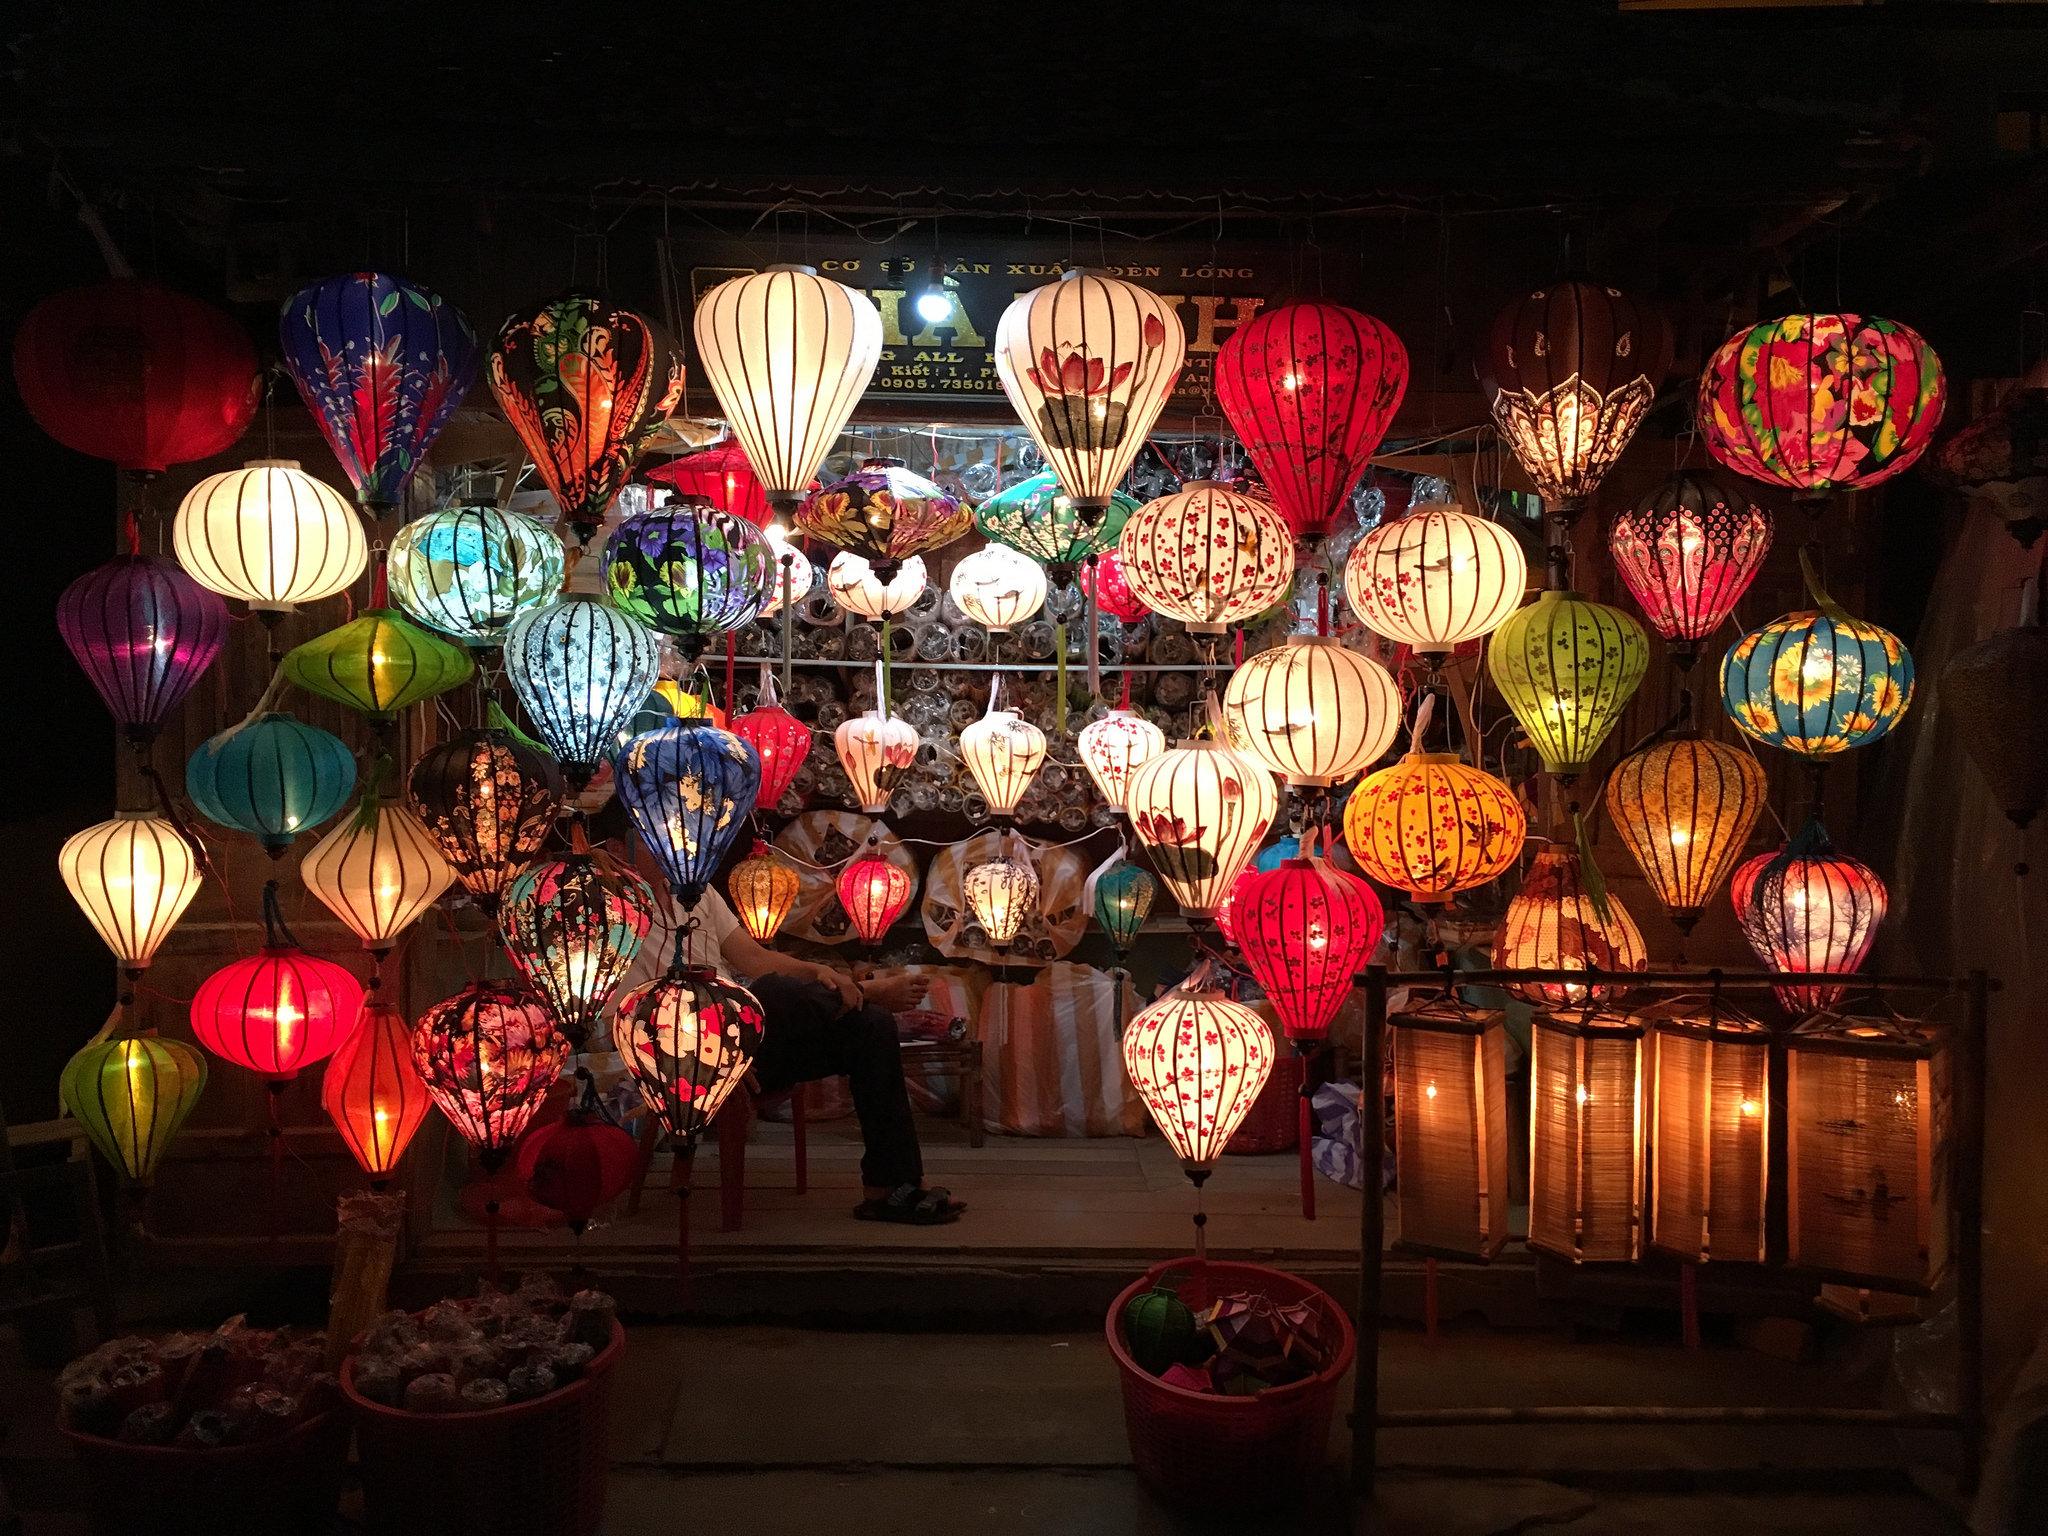 Outdoor Lichterkette Lampions Where To Buy Lanterns In Ho Chi Minh City